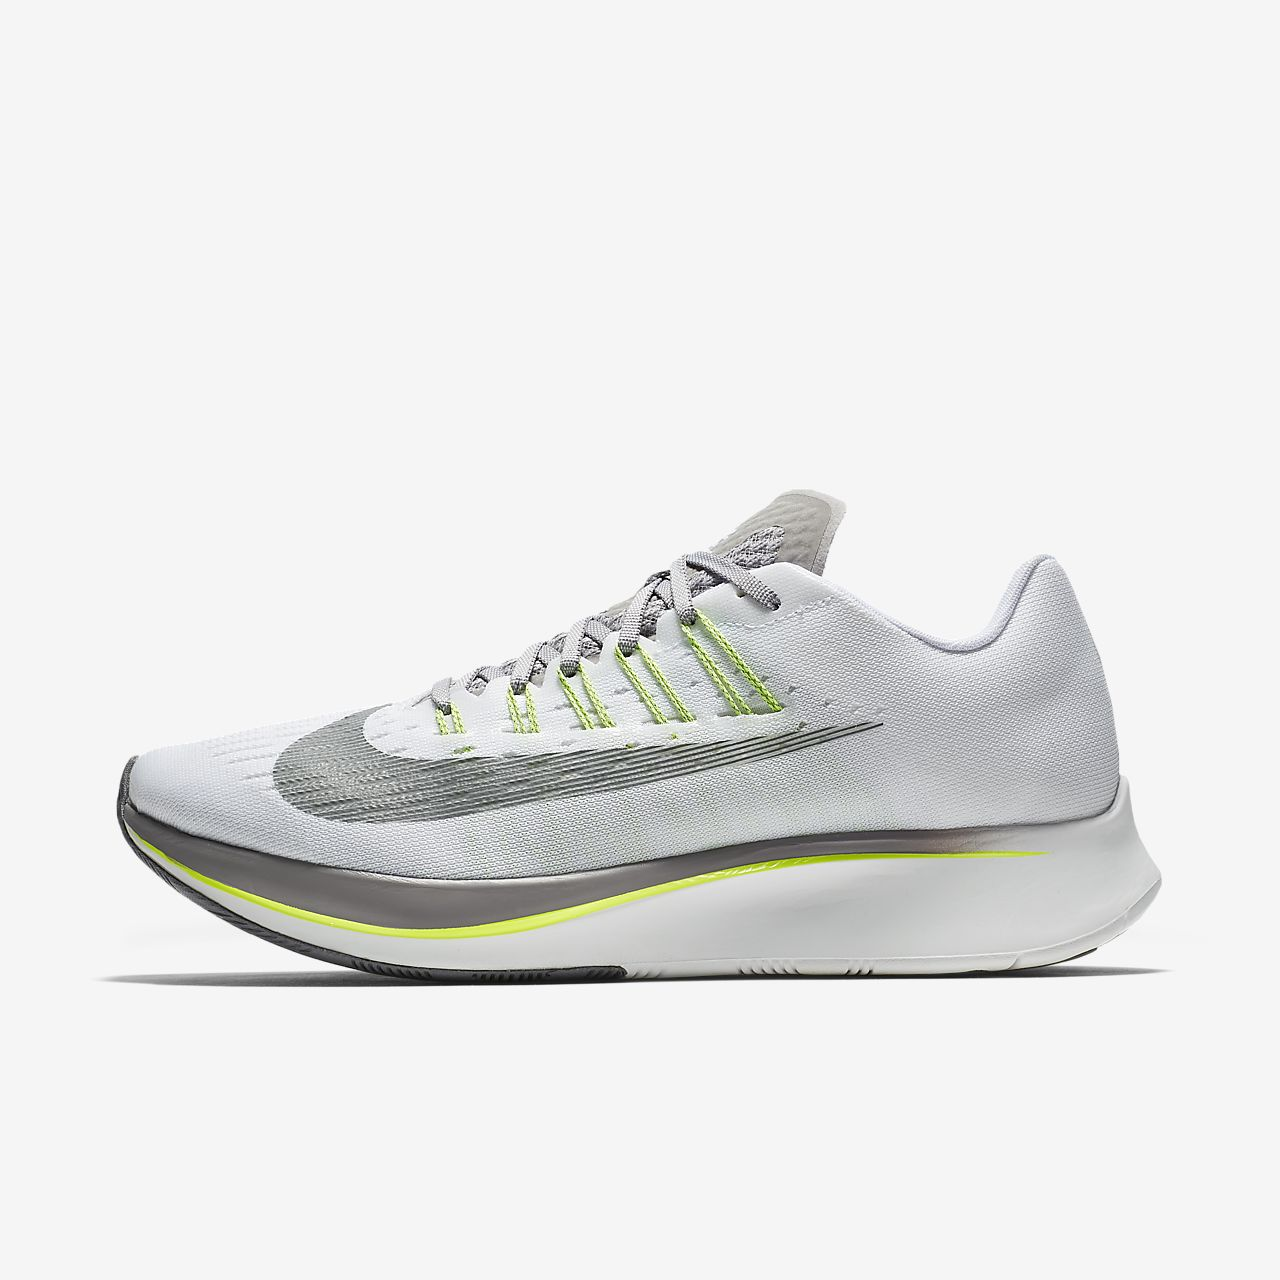 sports shoes 08ed2 bd83c ... Nike Zoom Fly Men s Running Shoe